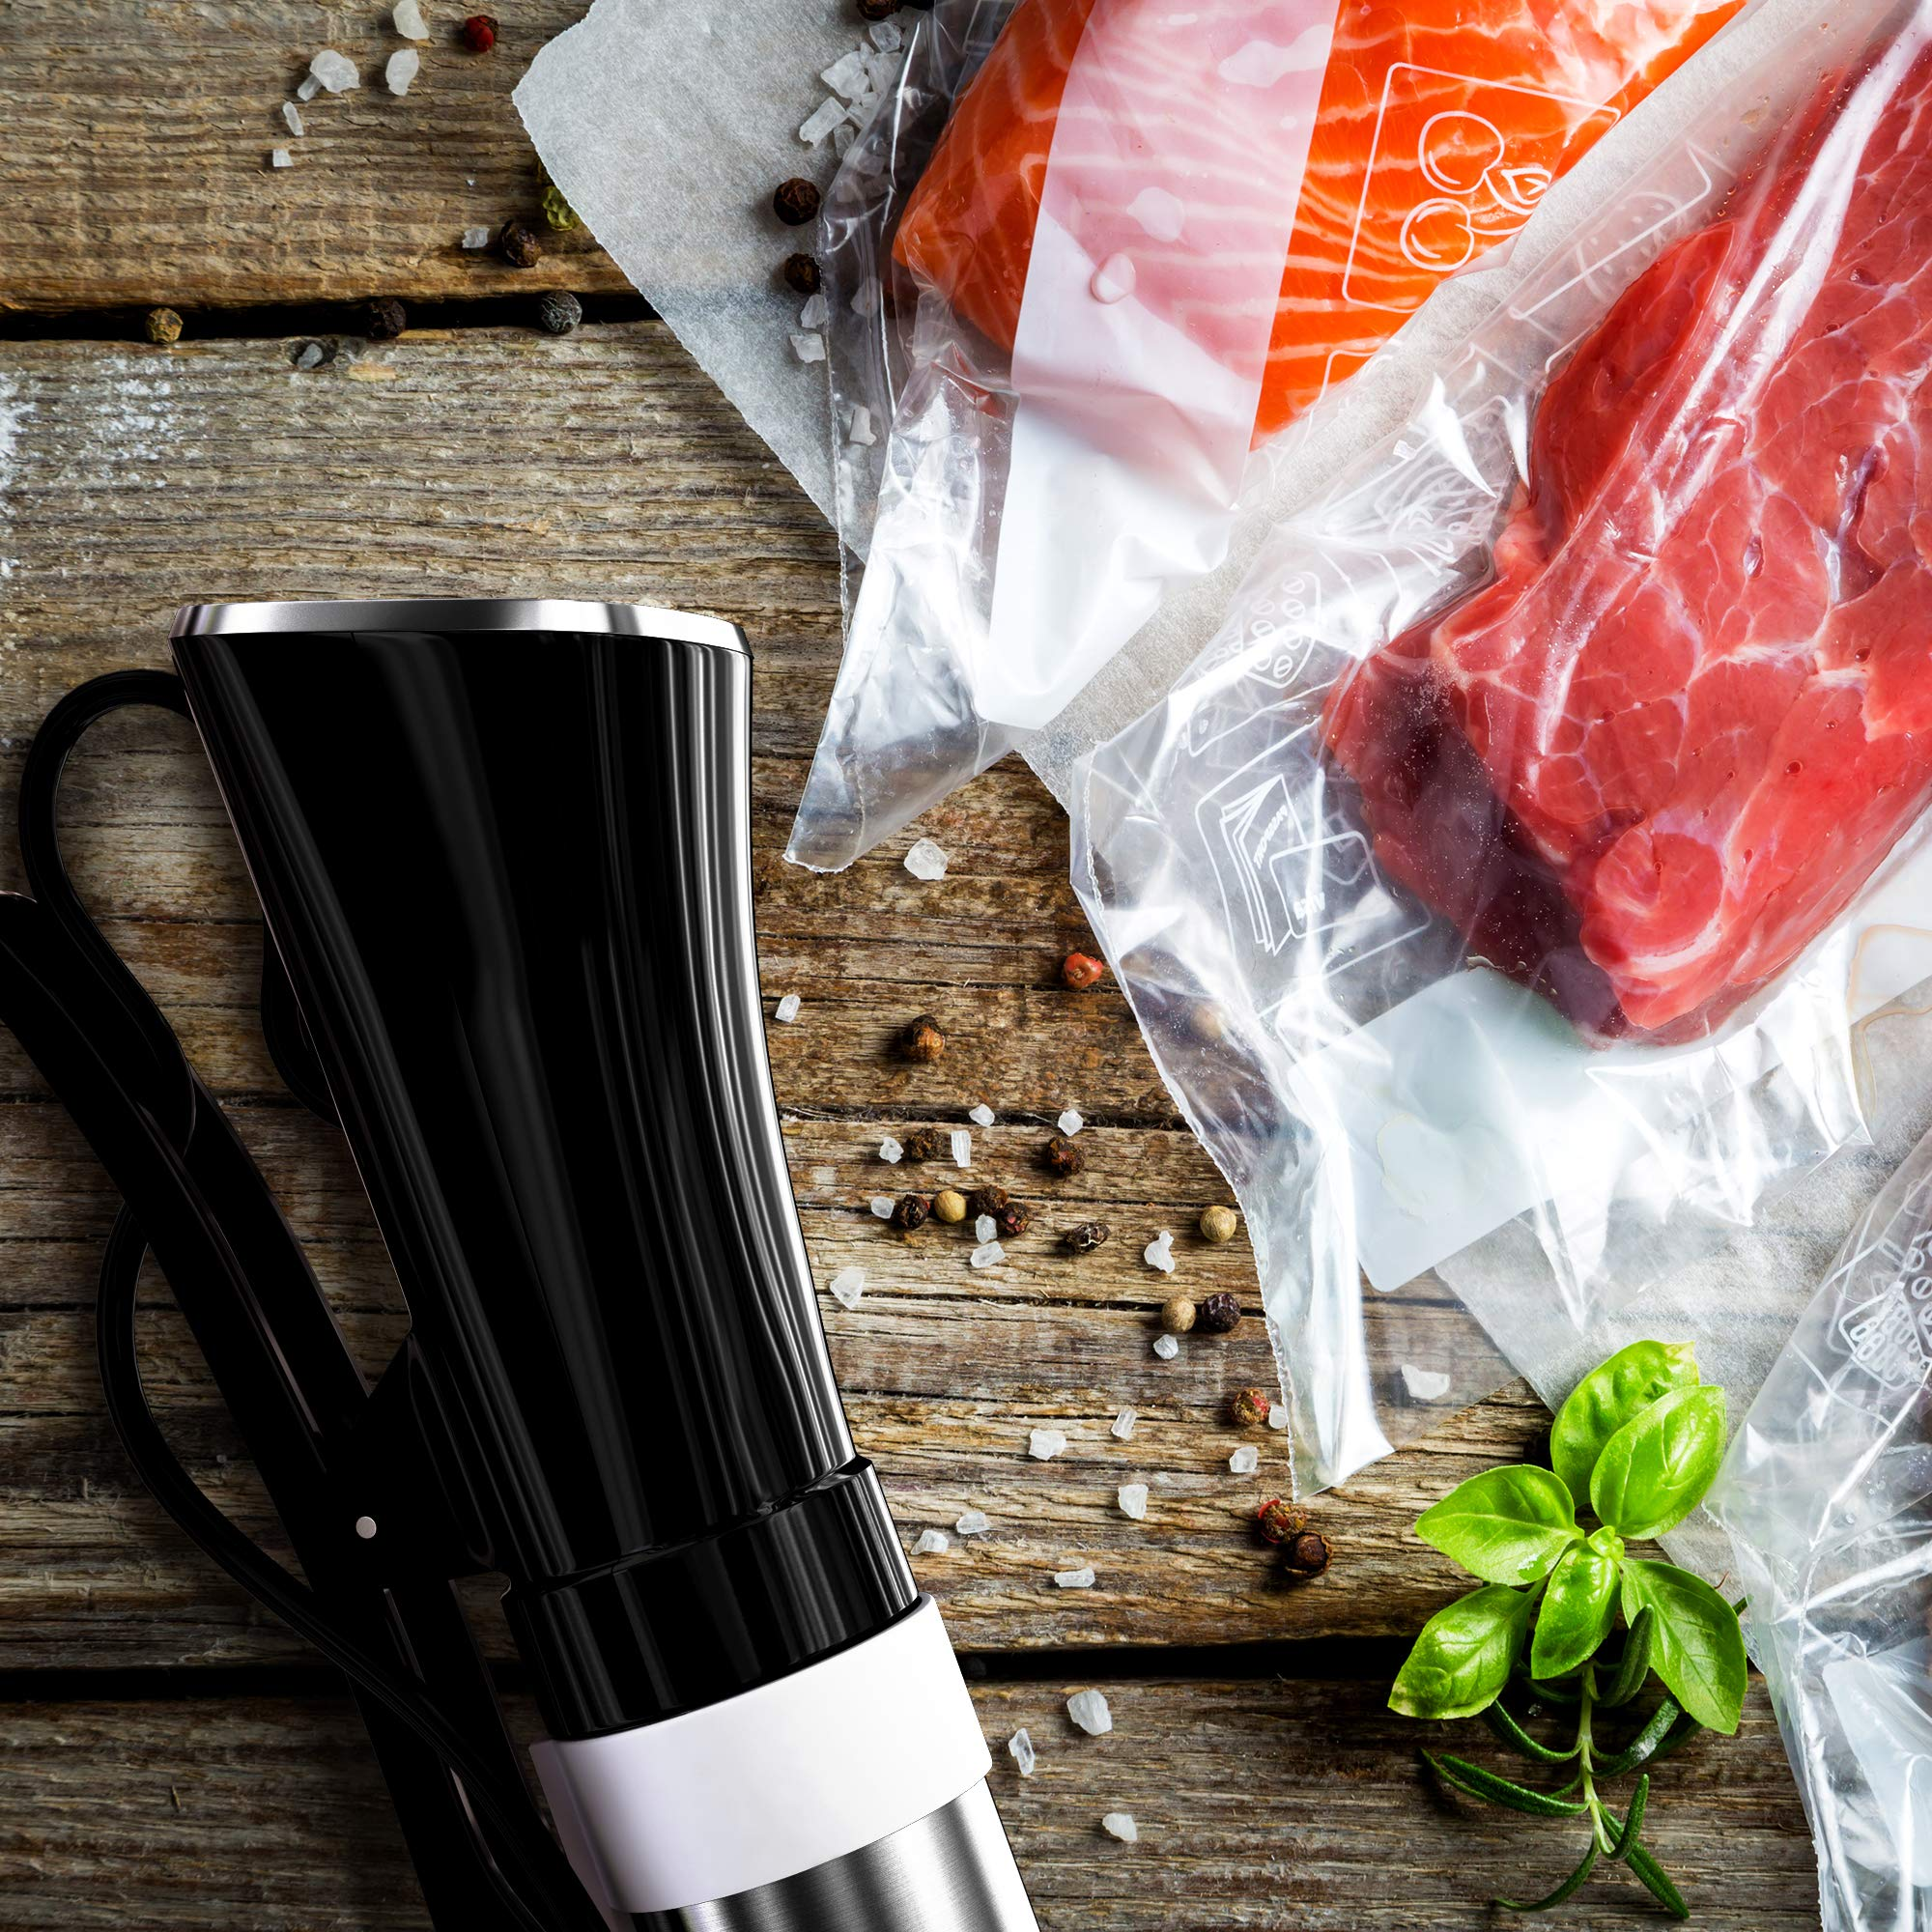 sous vide cooking shopsousvide.com